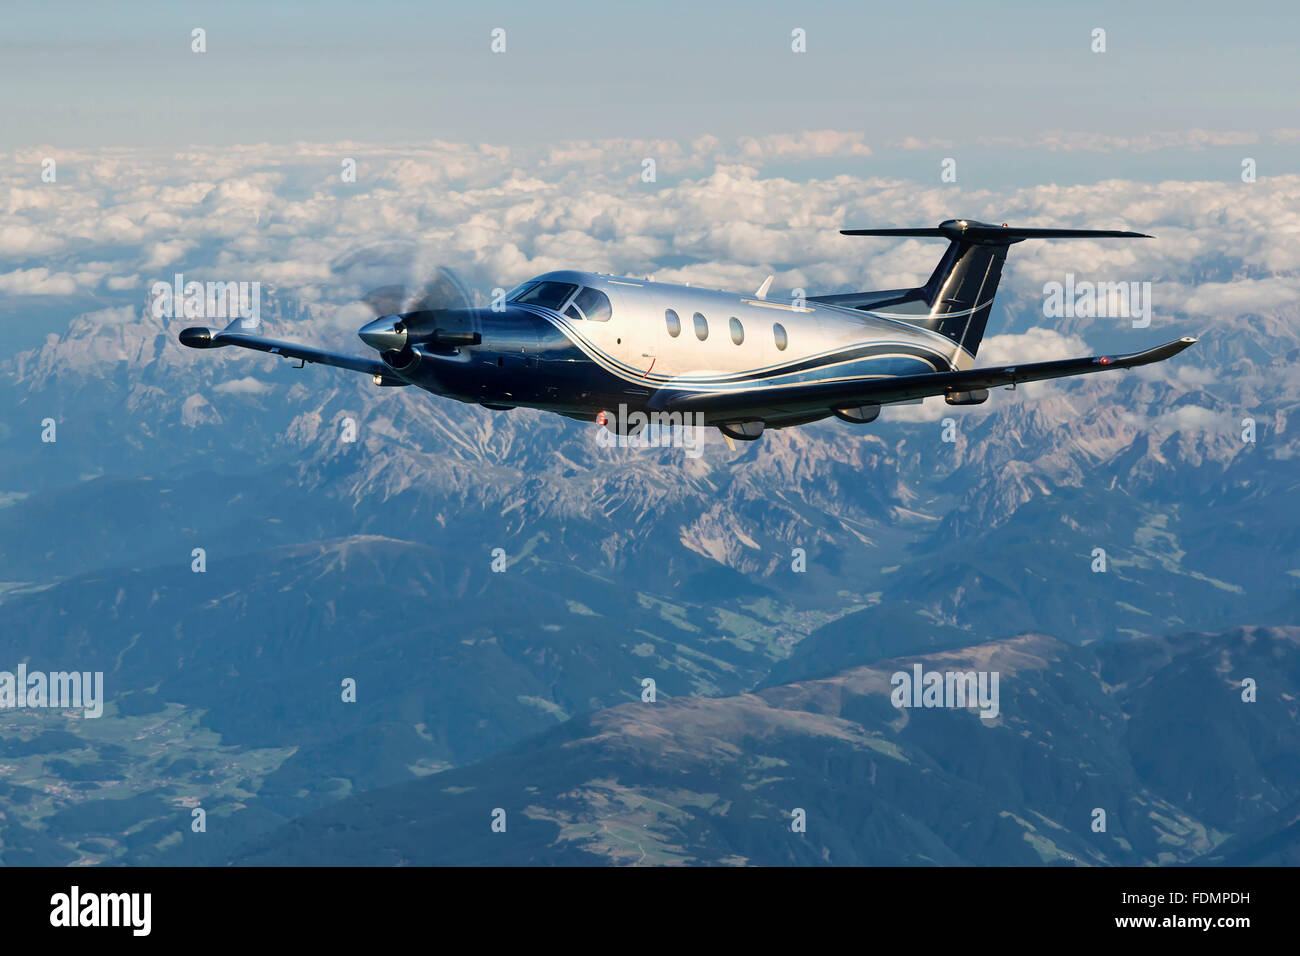 Single-engine turboprop aircraft flying over the Alps in Austria. - Stock Image